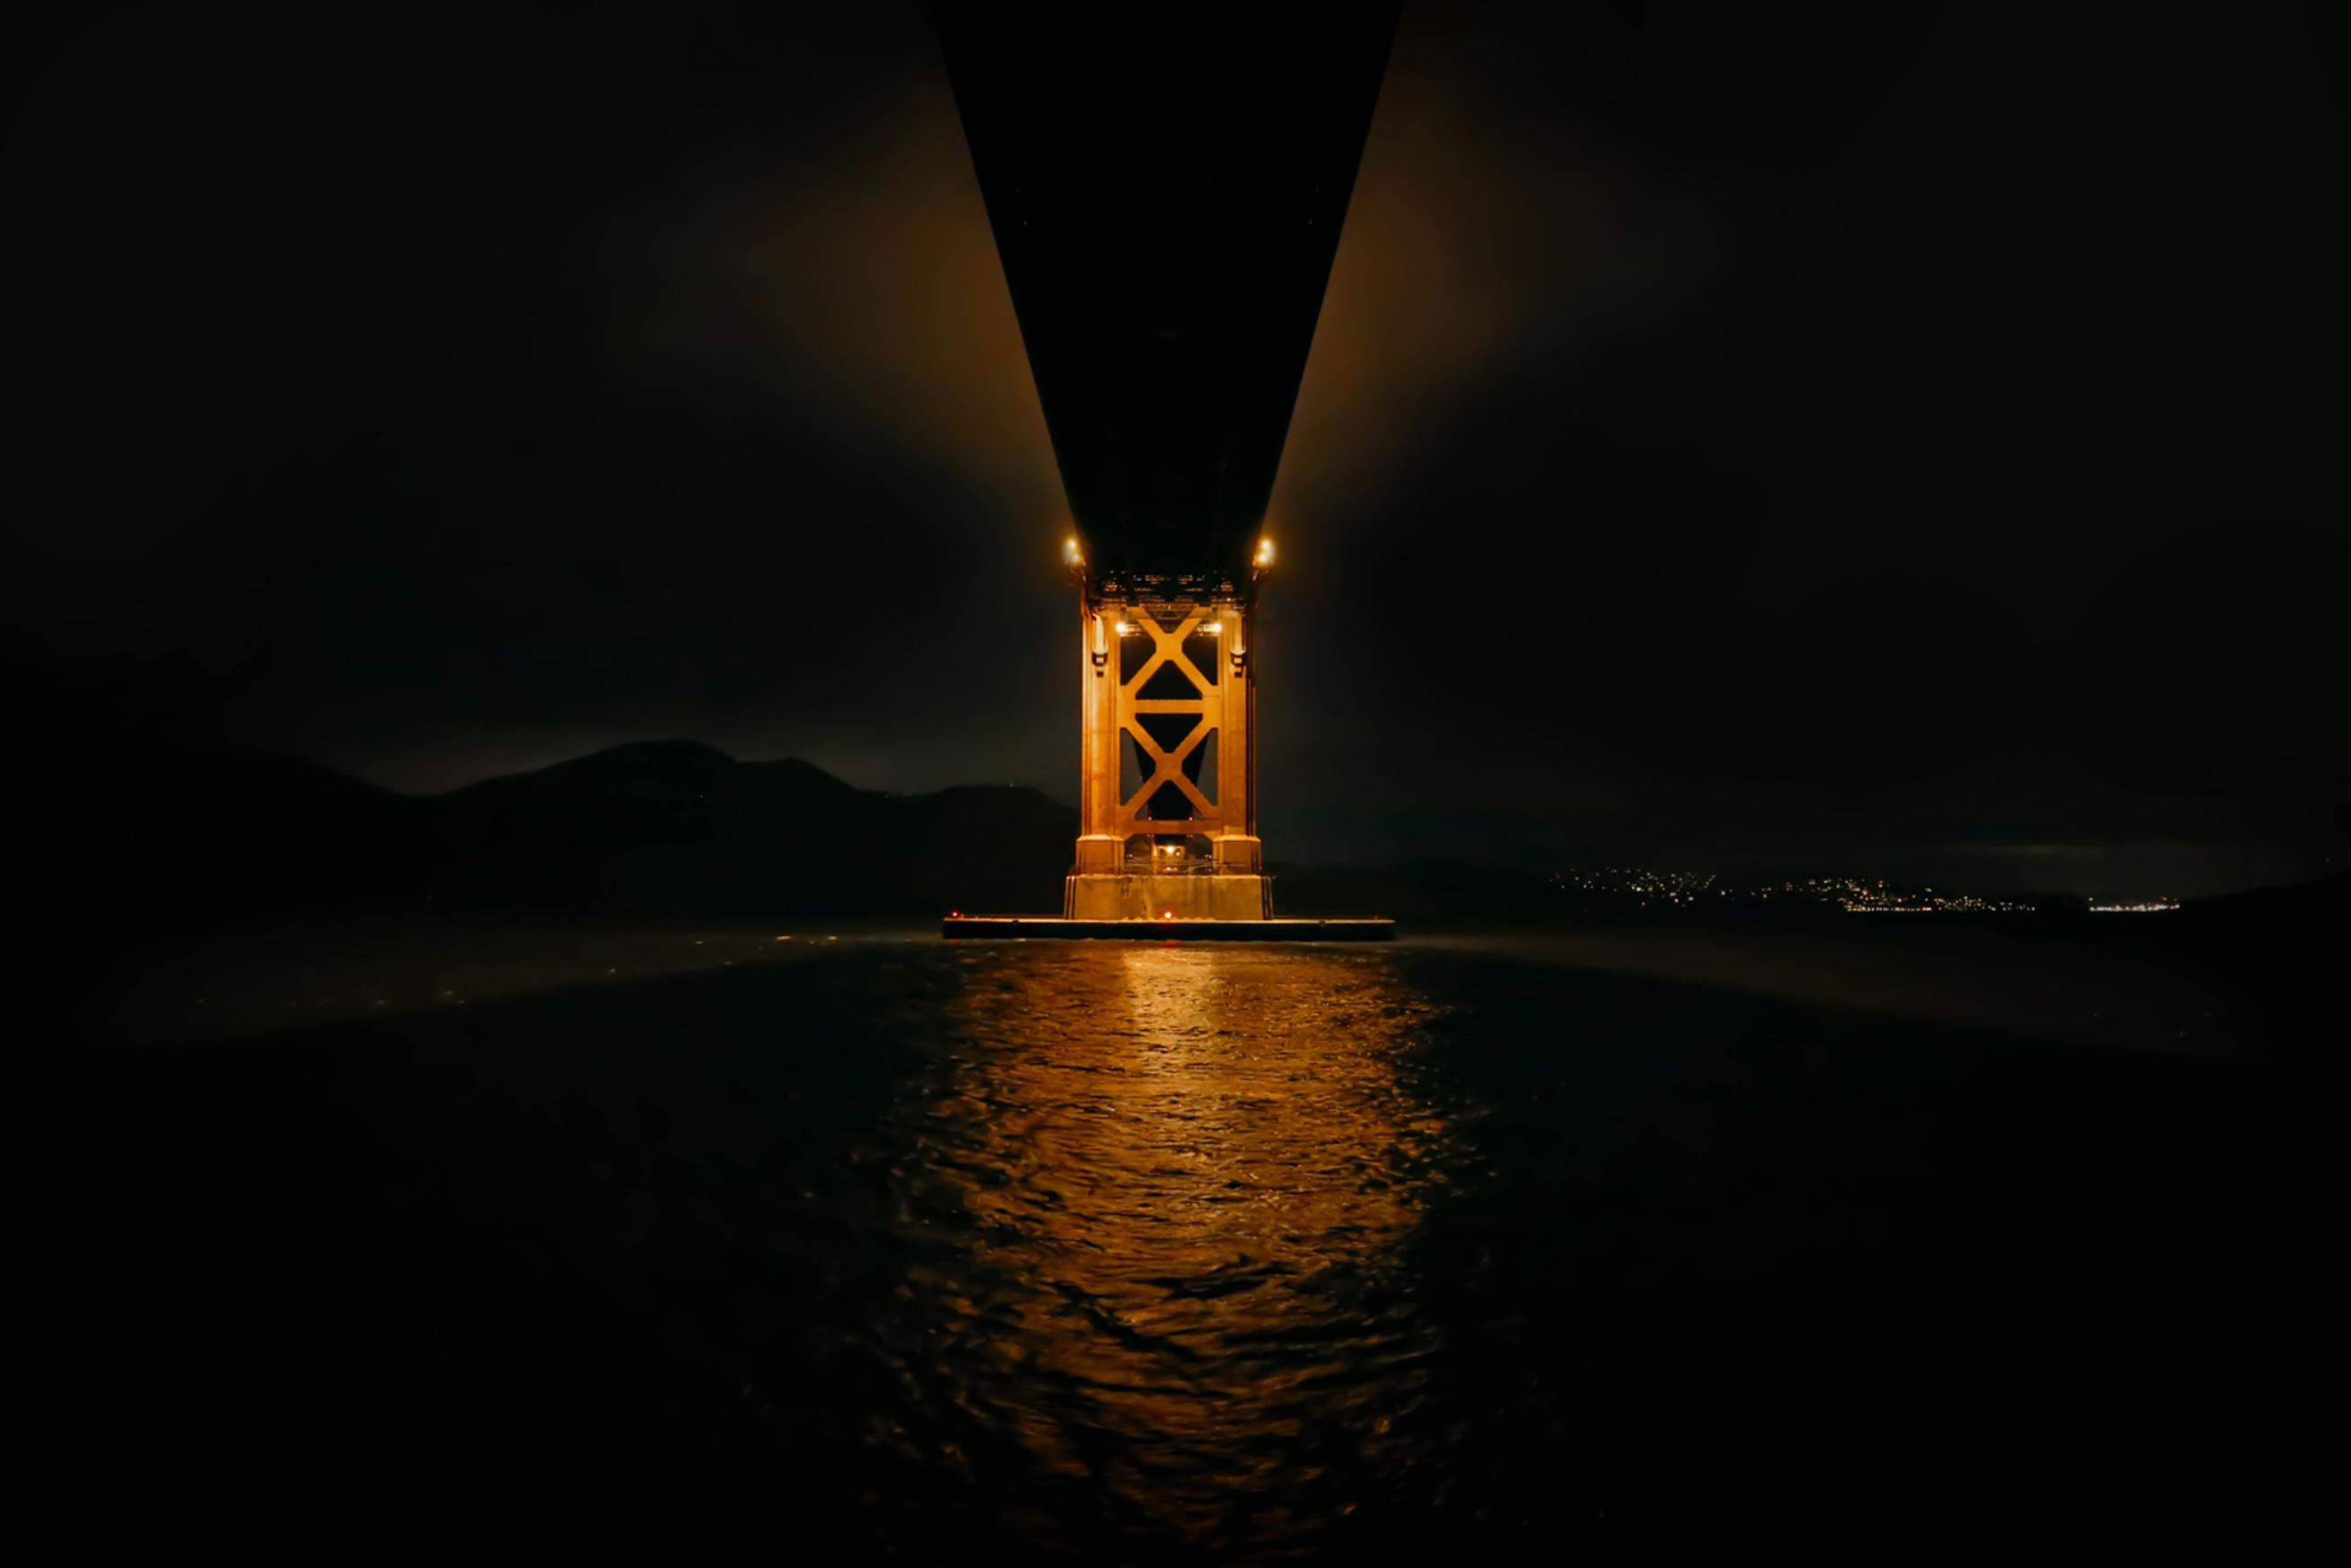 golden gate bridge at night san francisco bay area